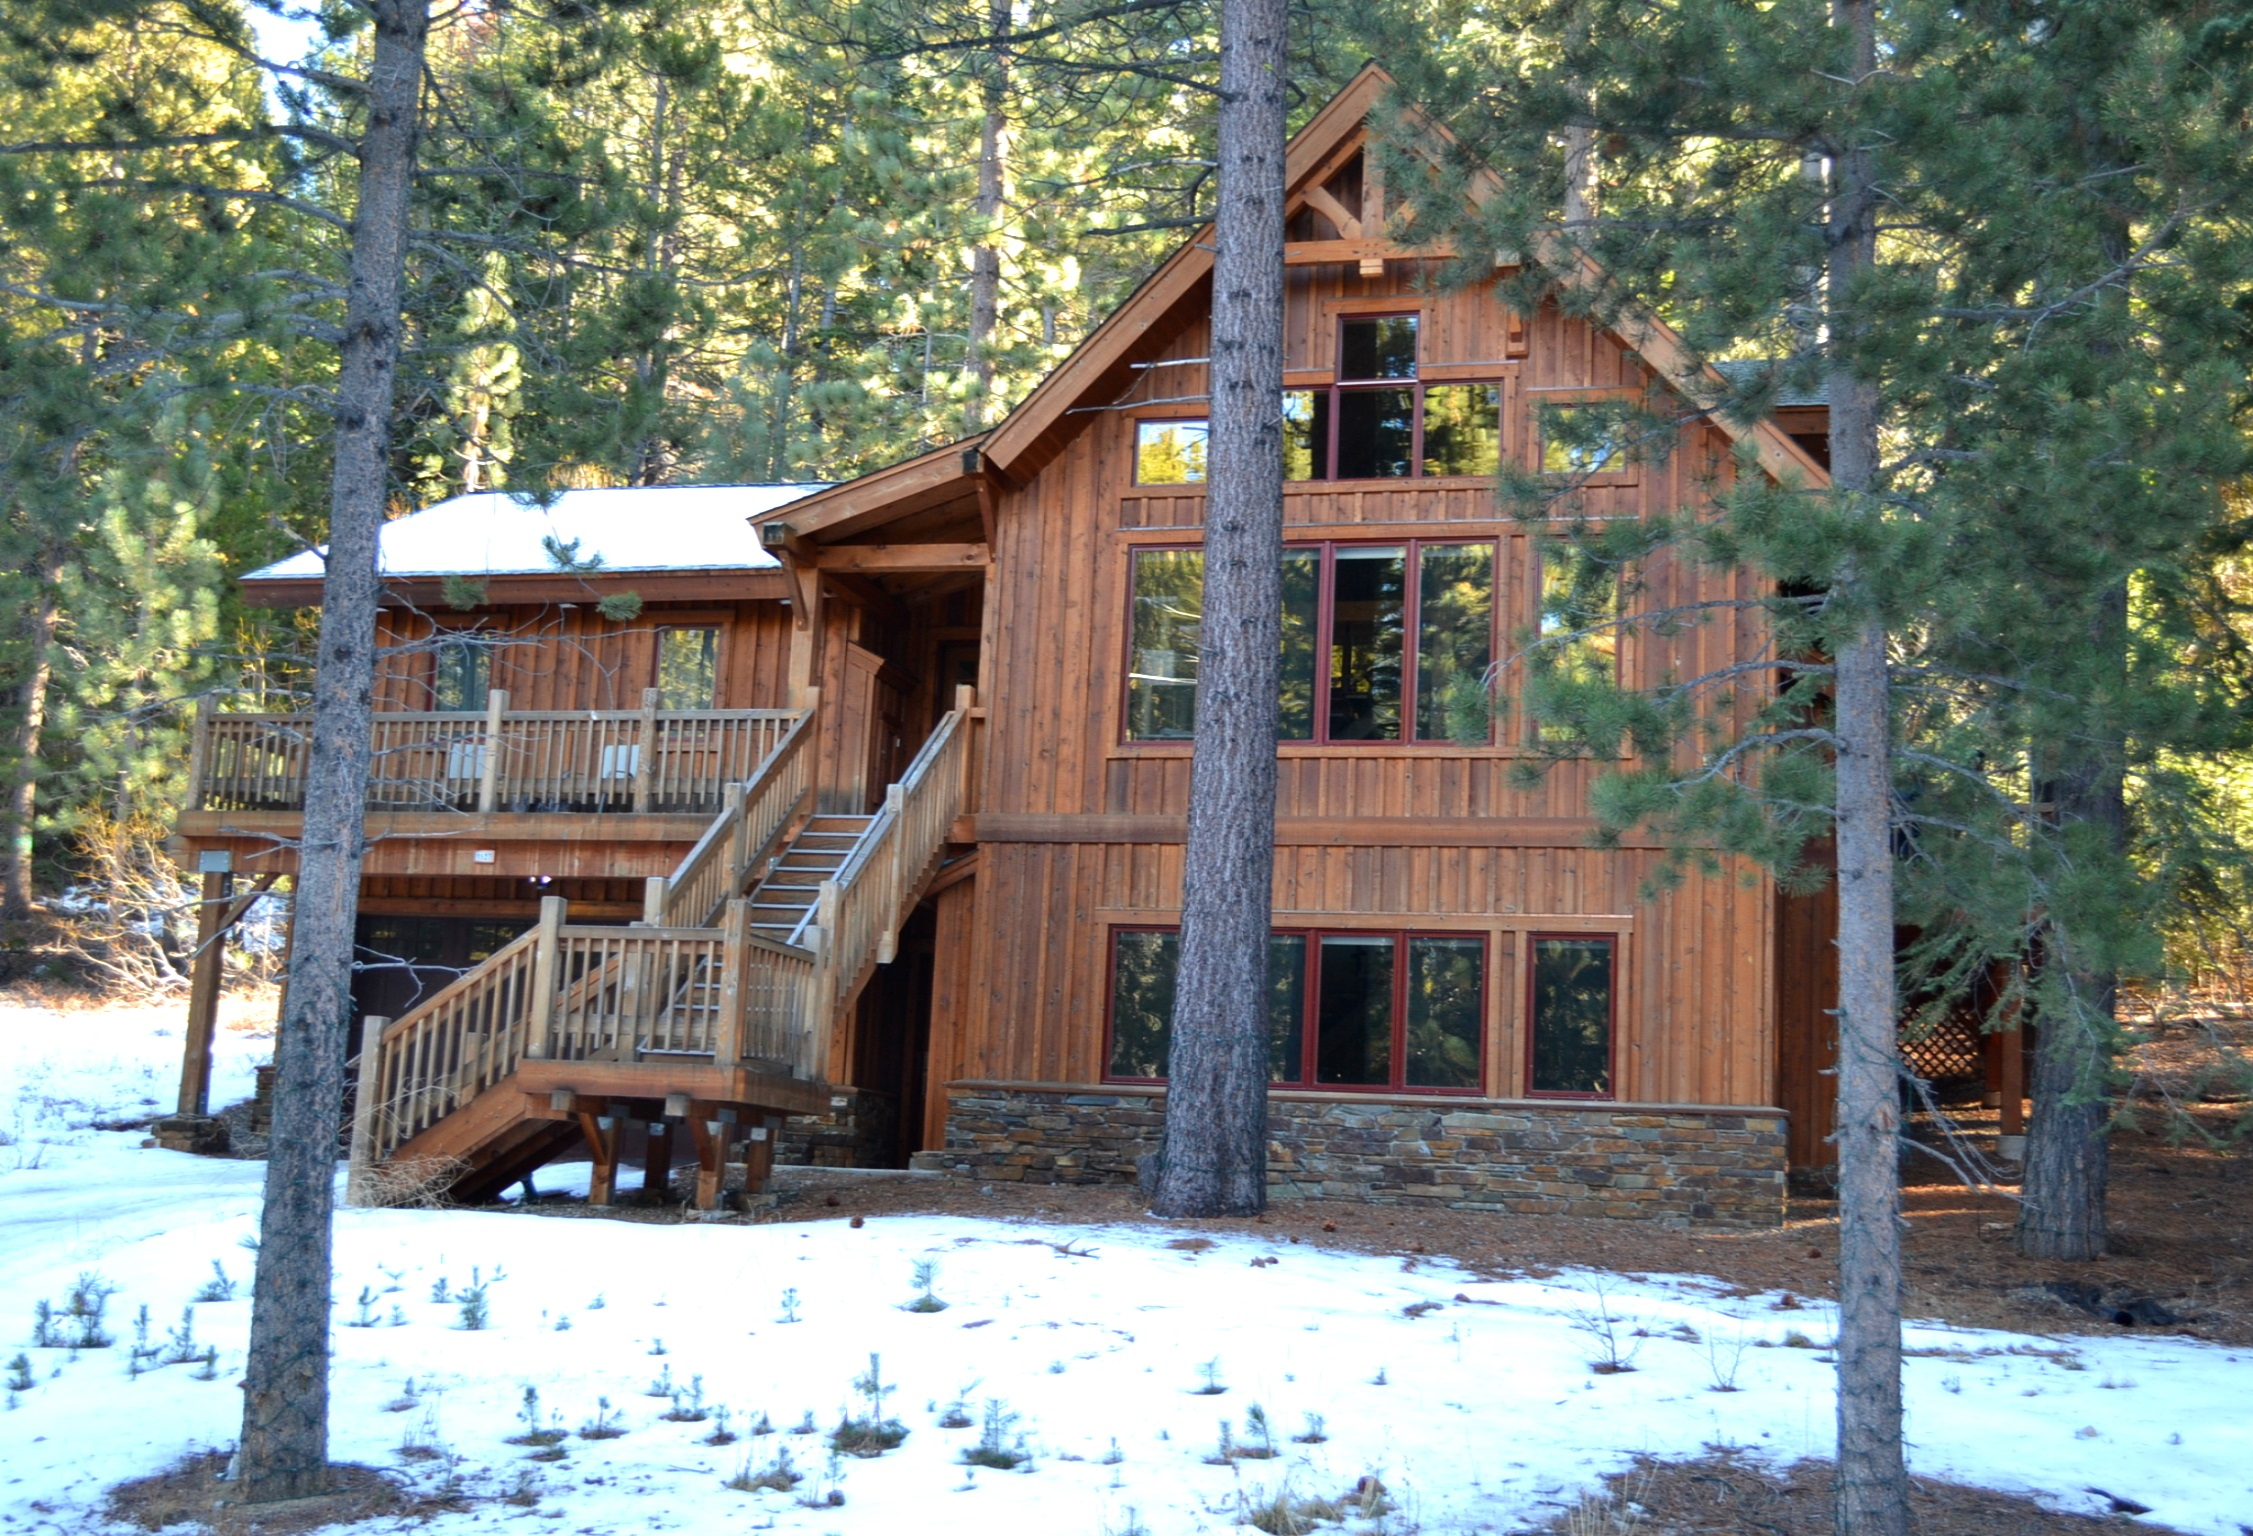 property estate real talbot ca source sltmls mls for lake photo properties tahoe family type single south cabins street